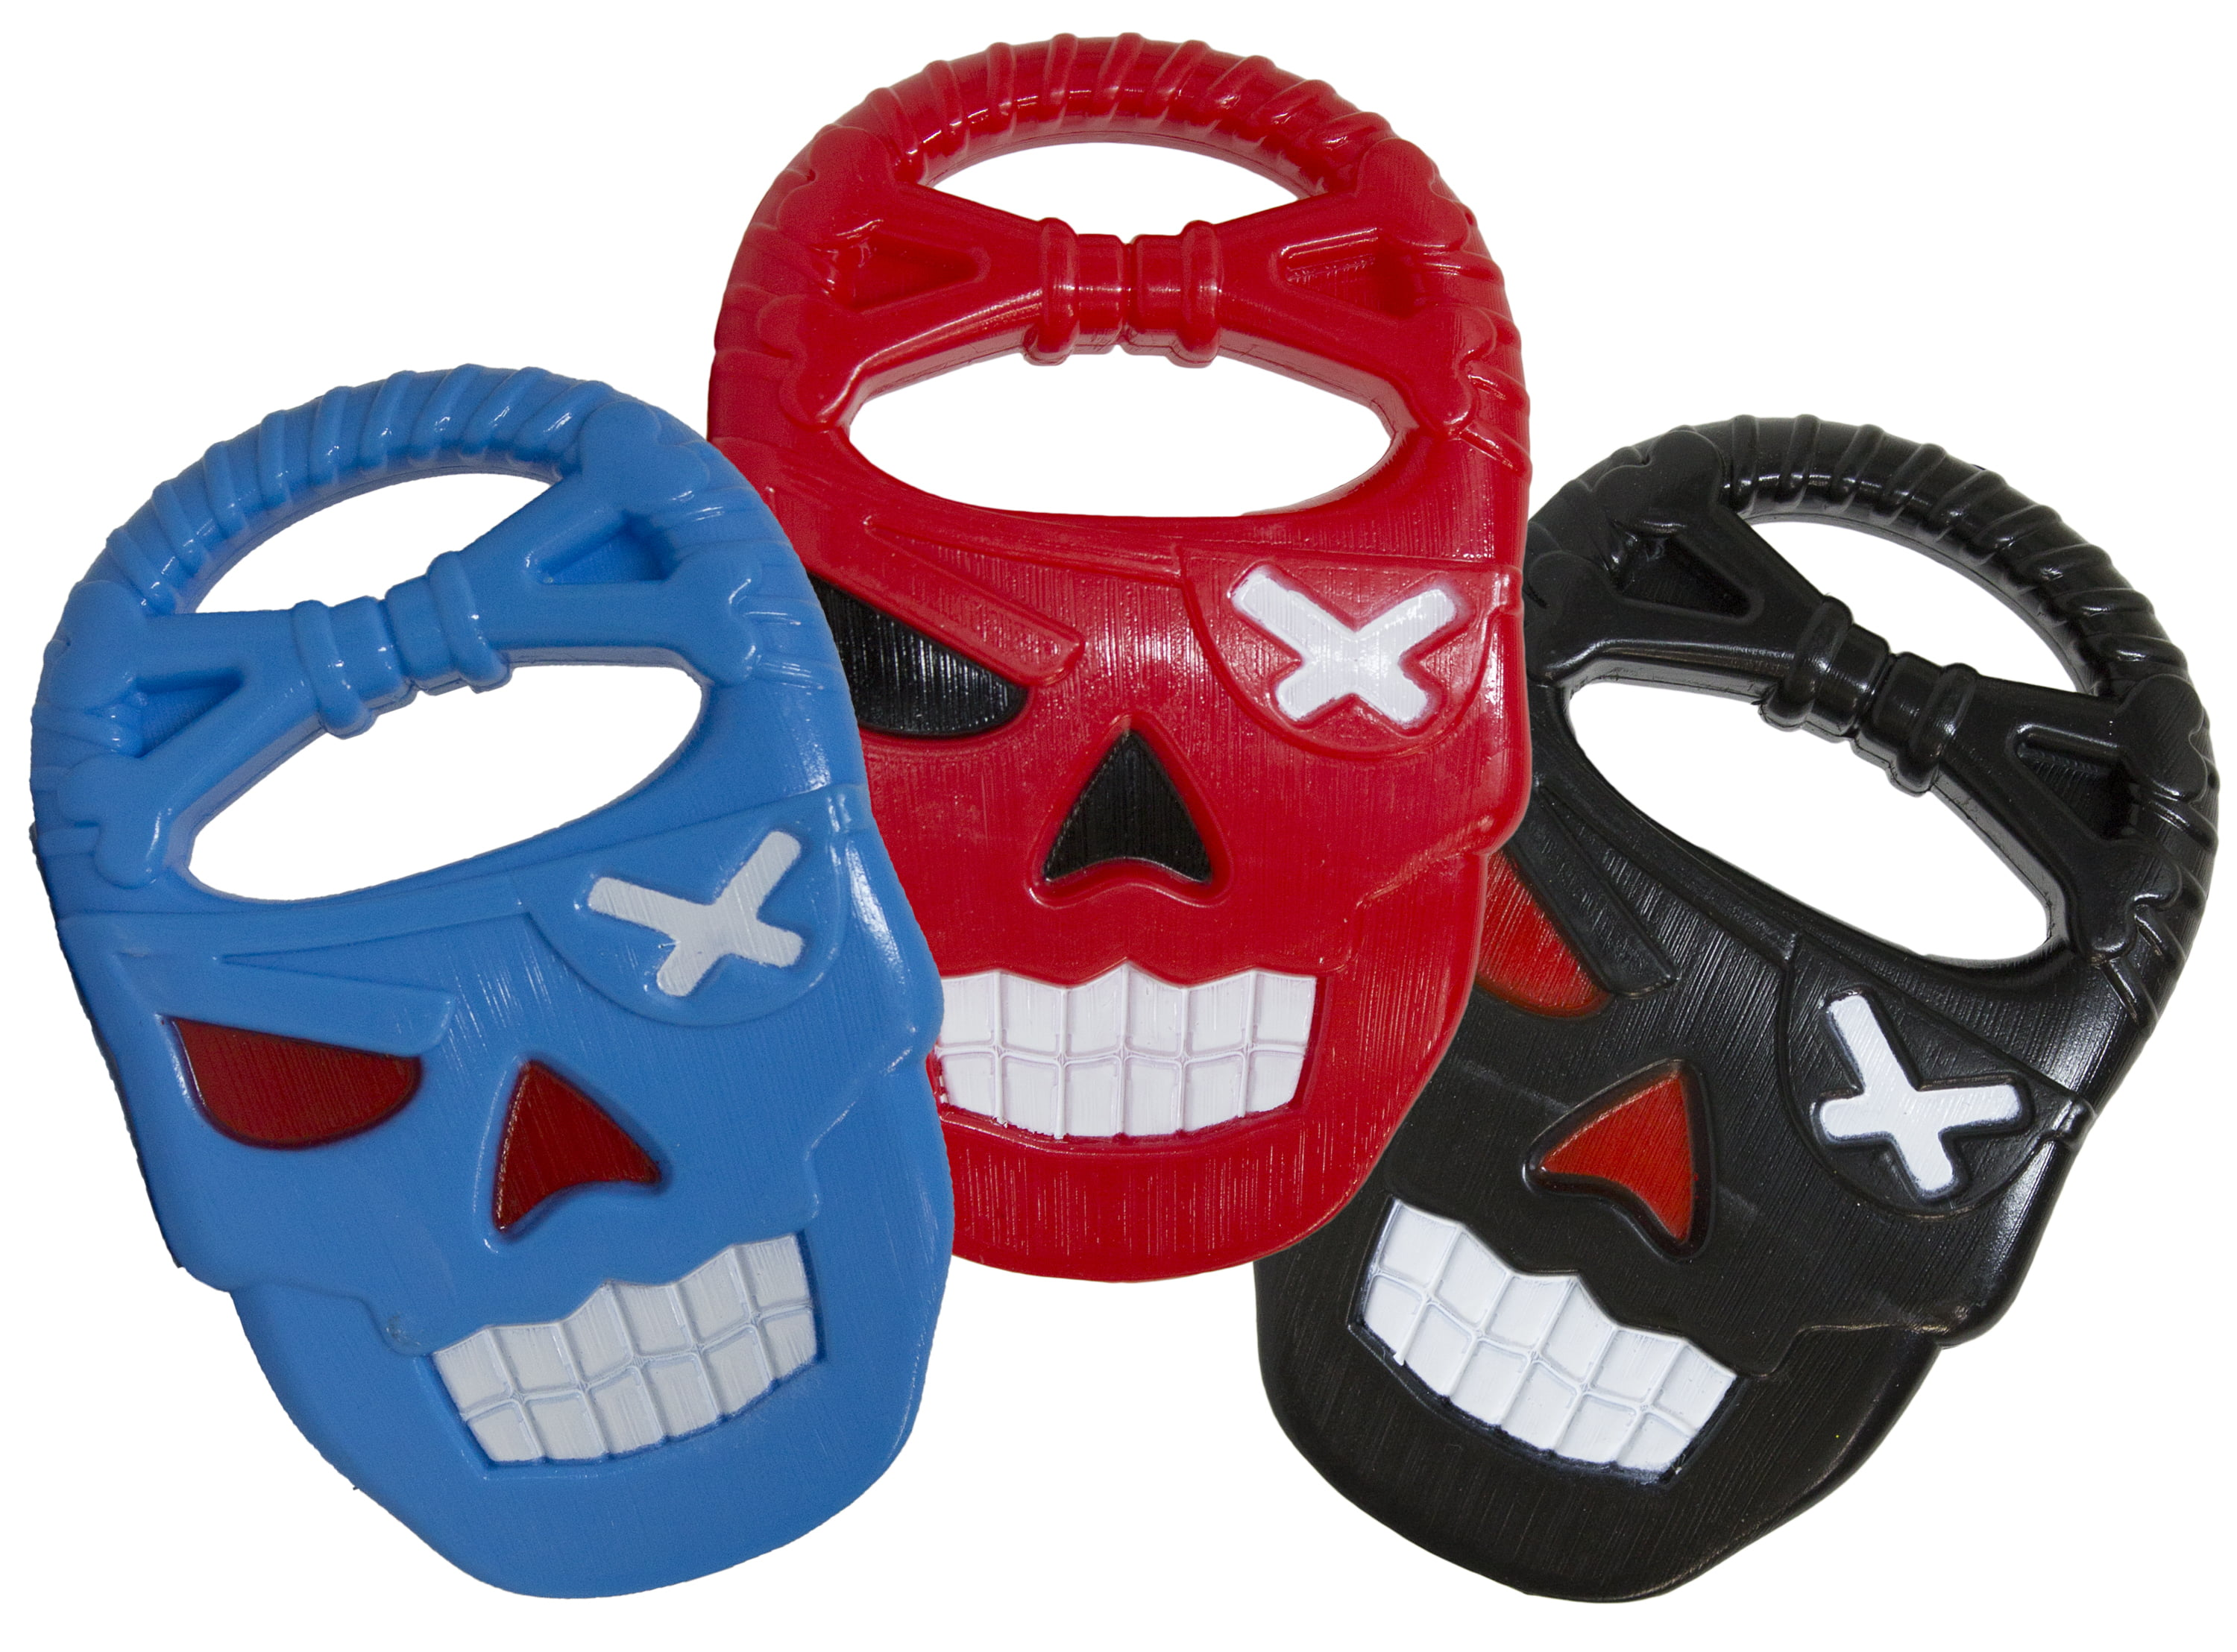 Beach Toys Set of 3 Pirate Skull Sand Digger Digging Claws by Fun Stuff